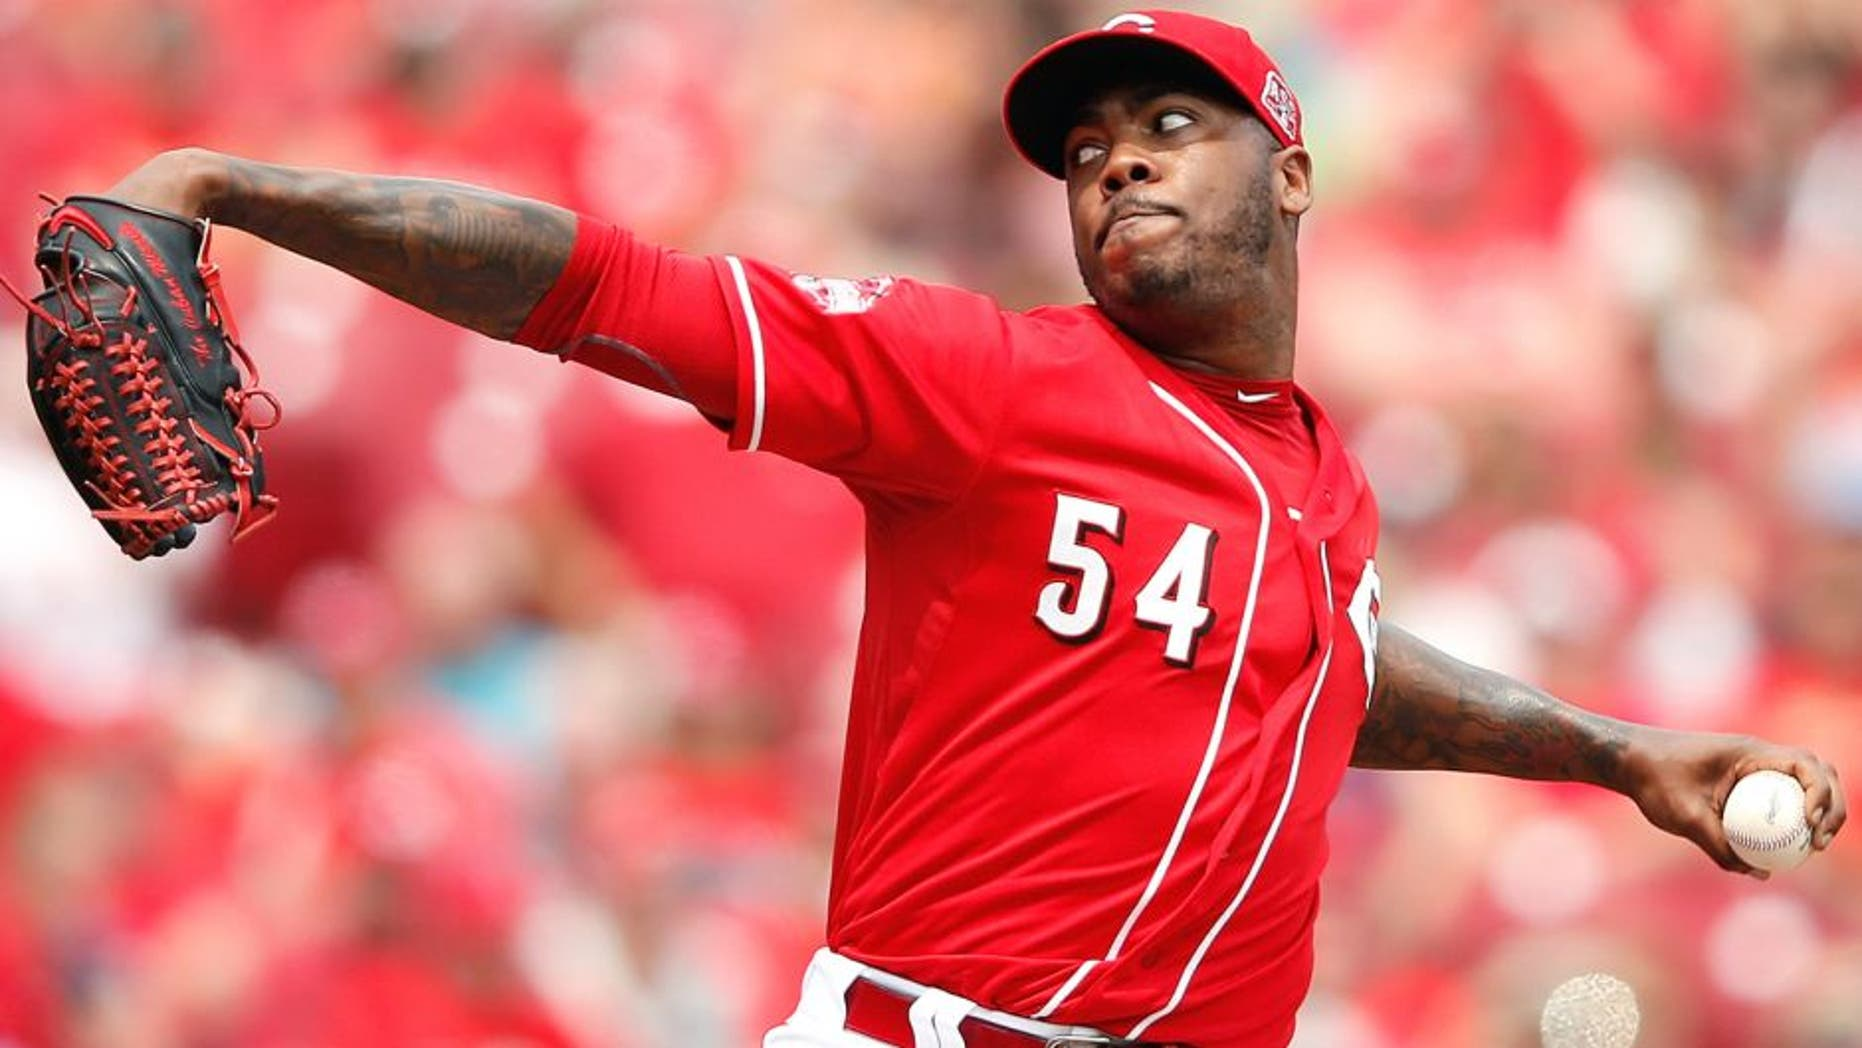 CINCINNATI, OH - JULY 1: Aroldis Chapman #54 of the Cincinnati Reds pitches in the ninth inning against the Minnesota Twins at Great American Ball Park on July 1, 2015 in Cincinnati, Ohio. The Reds defeated the Twins 2-1. (Photo by Joe Robbins/Getty Images)